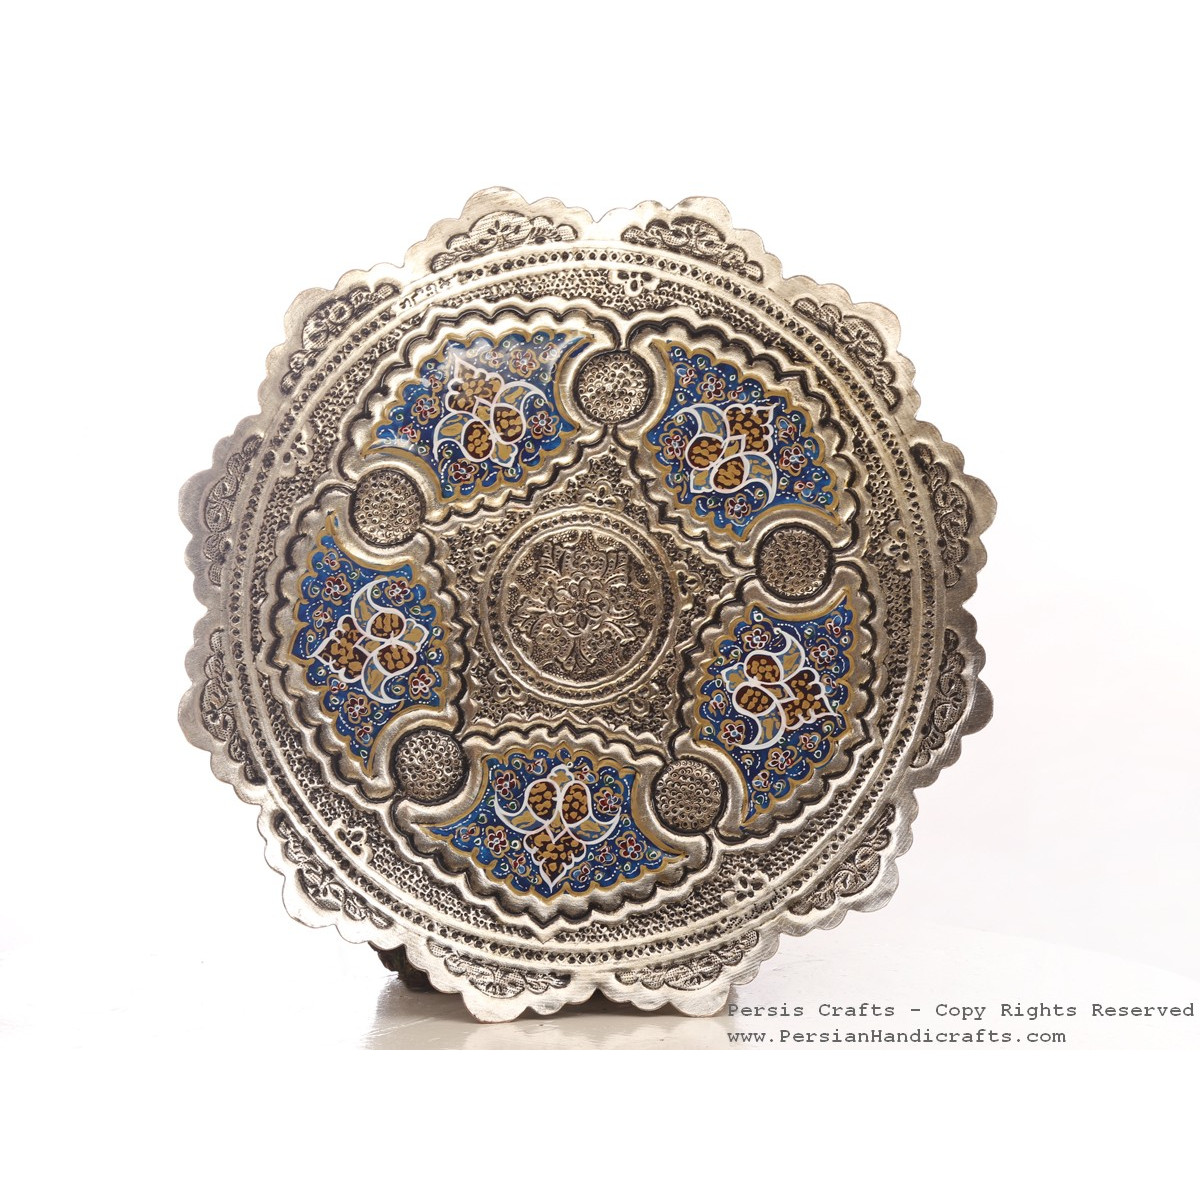 Enamel Engraved Wall Hanging Plate - HE3048-Persian Handicrafts